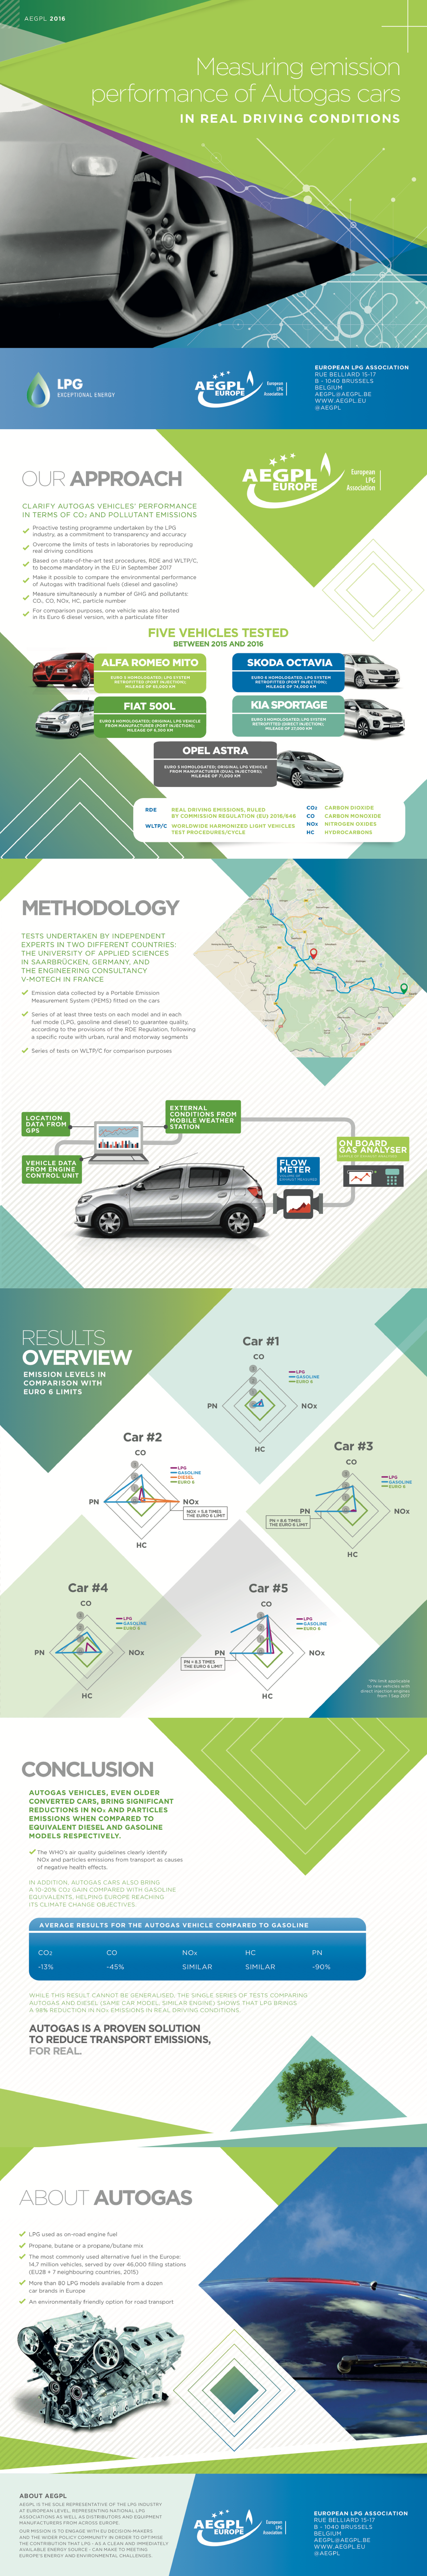 Measuring emission performance of Autogas cars